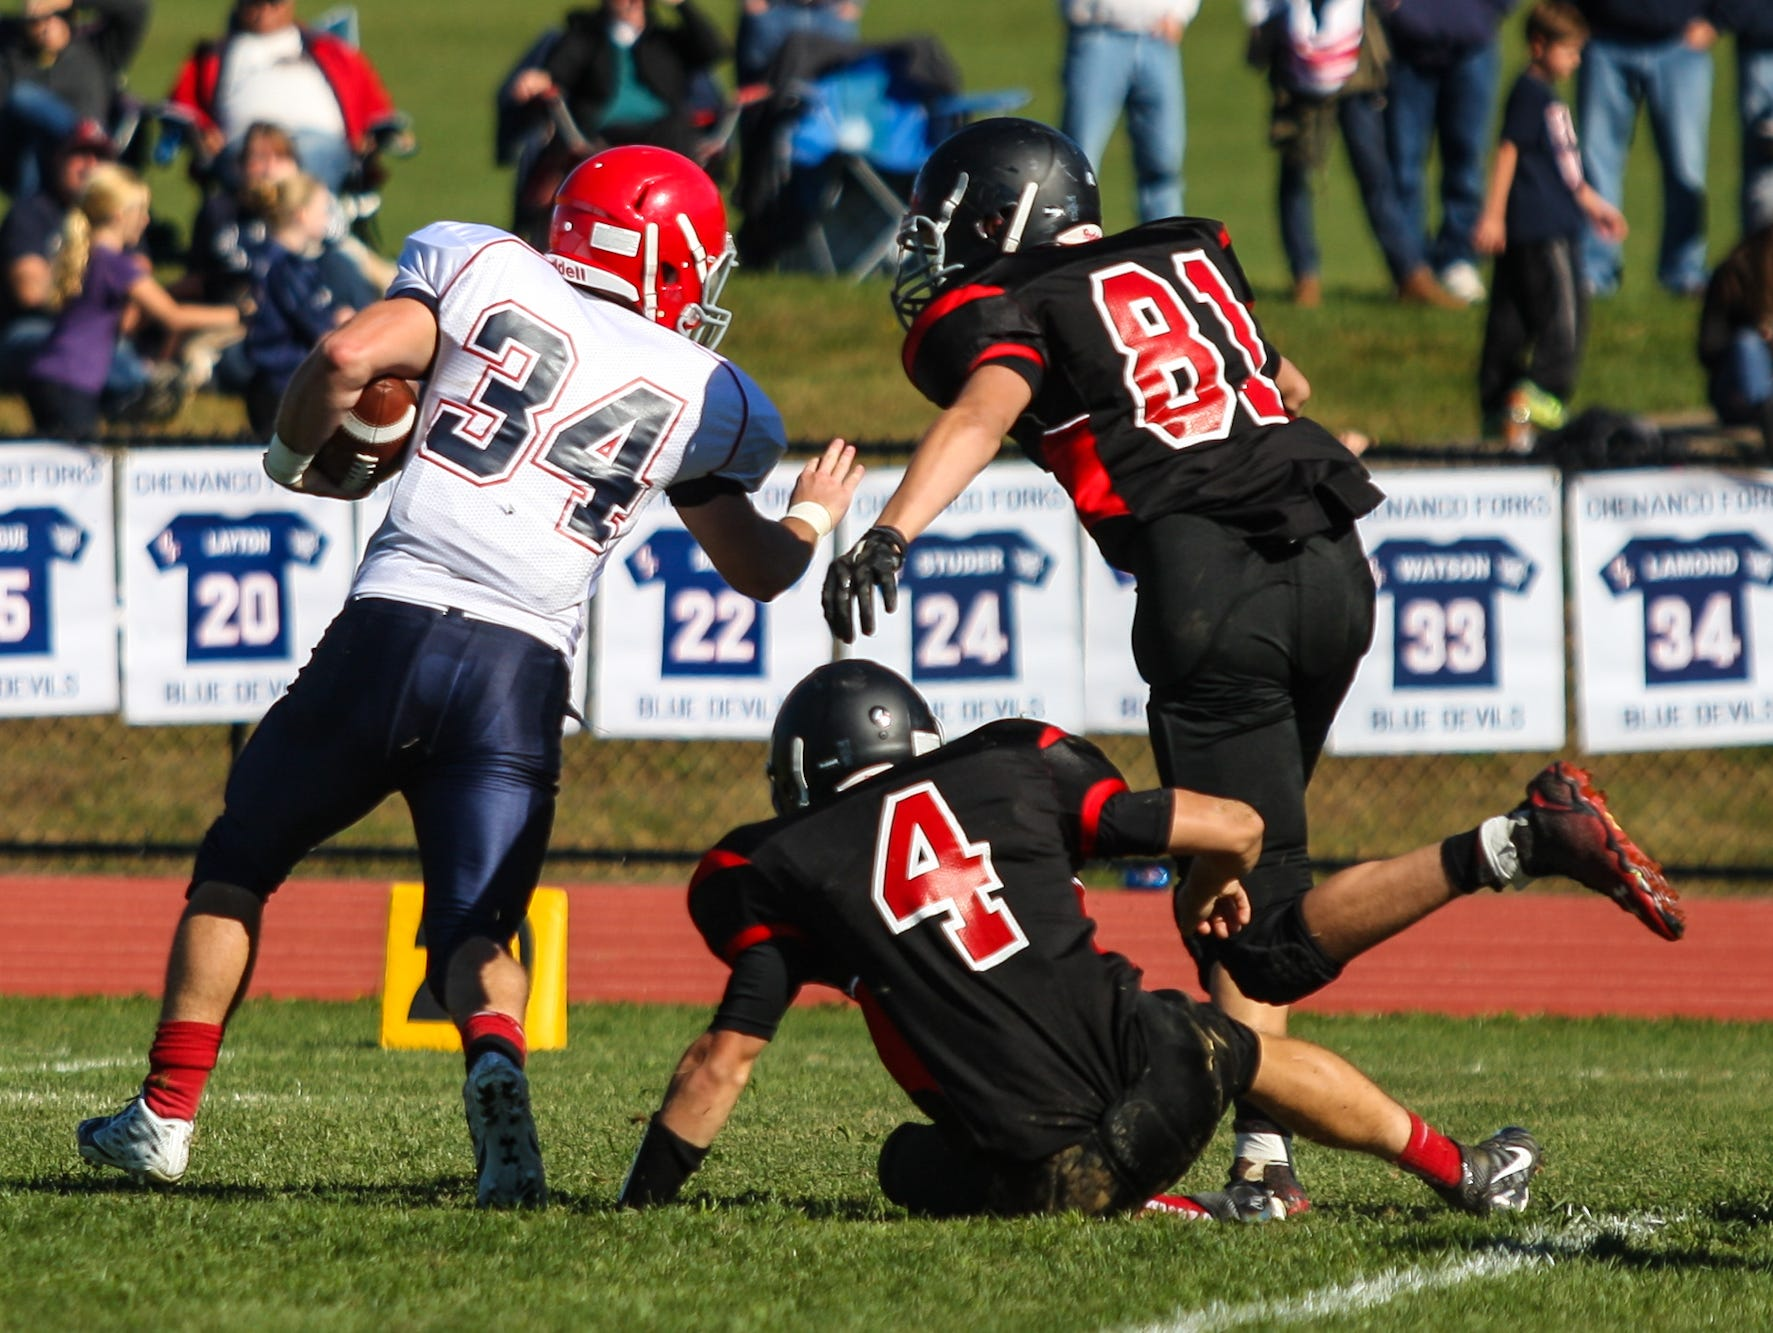 Chenango Forks defeated host Newark Valley, 34-21, on Saturday, Oct. 10.